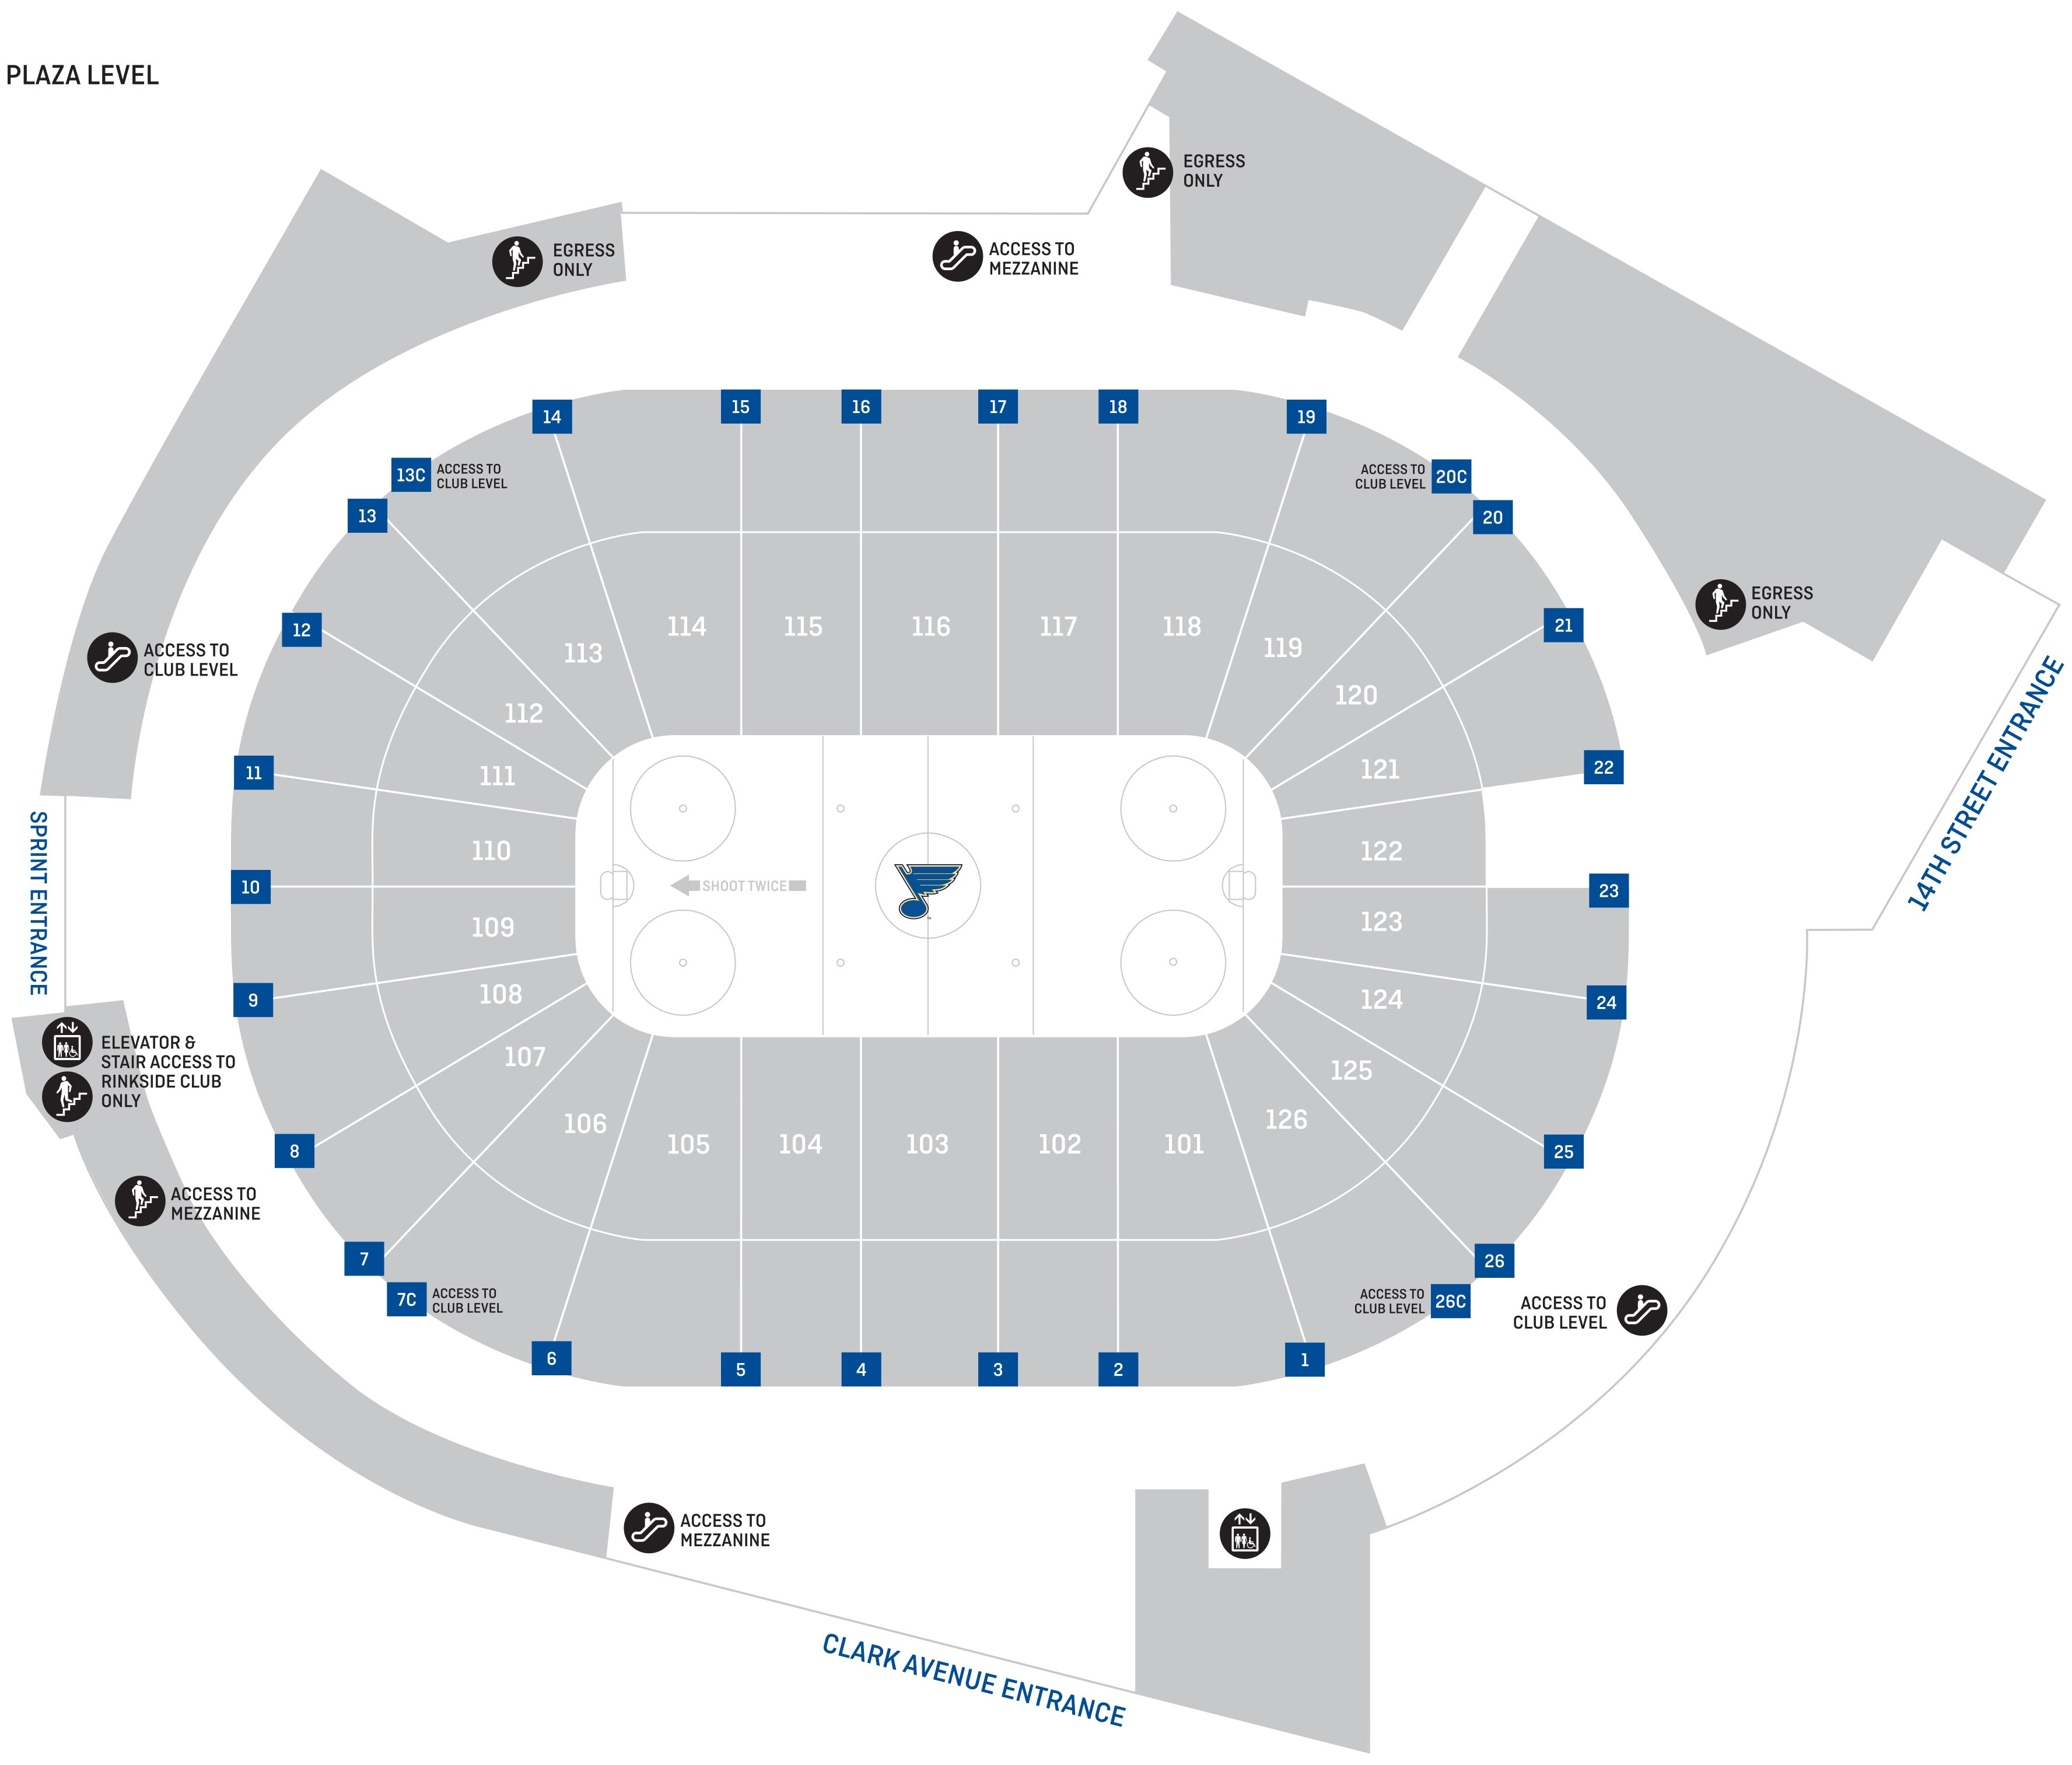 Seating Information | Enterprise Center on georgia dome section 101, georgia dome seat search, georgia dome diagram, carrier dome seat map, ga dome map, georgia dome layout, georgia dome history, georgia dome parking, georgia dome seating, edward jones dome seat map, rca dome seat map, georgia dome best seats in, georgia dome seat numbers, georgia dome tickets, georgia dome seat 341,